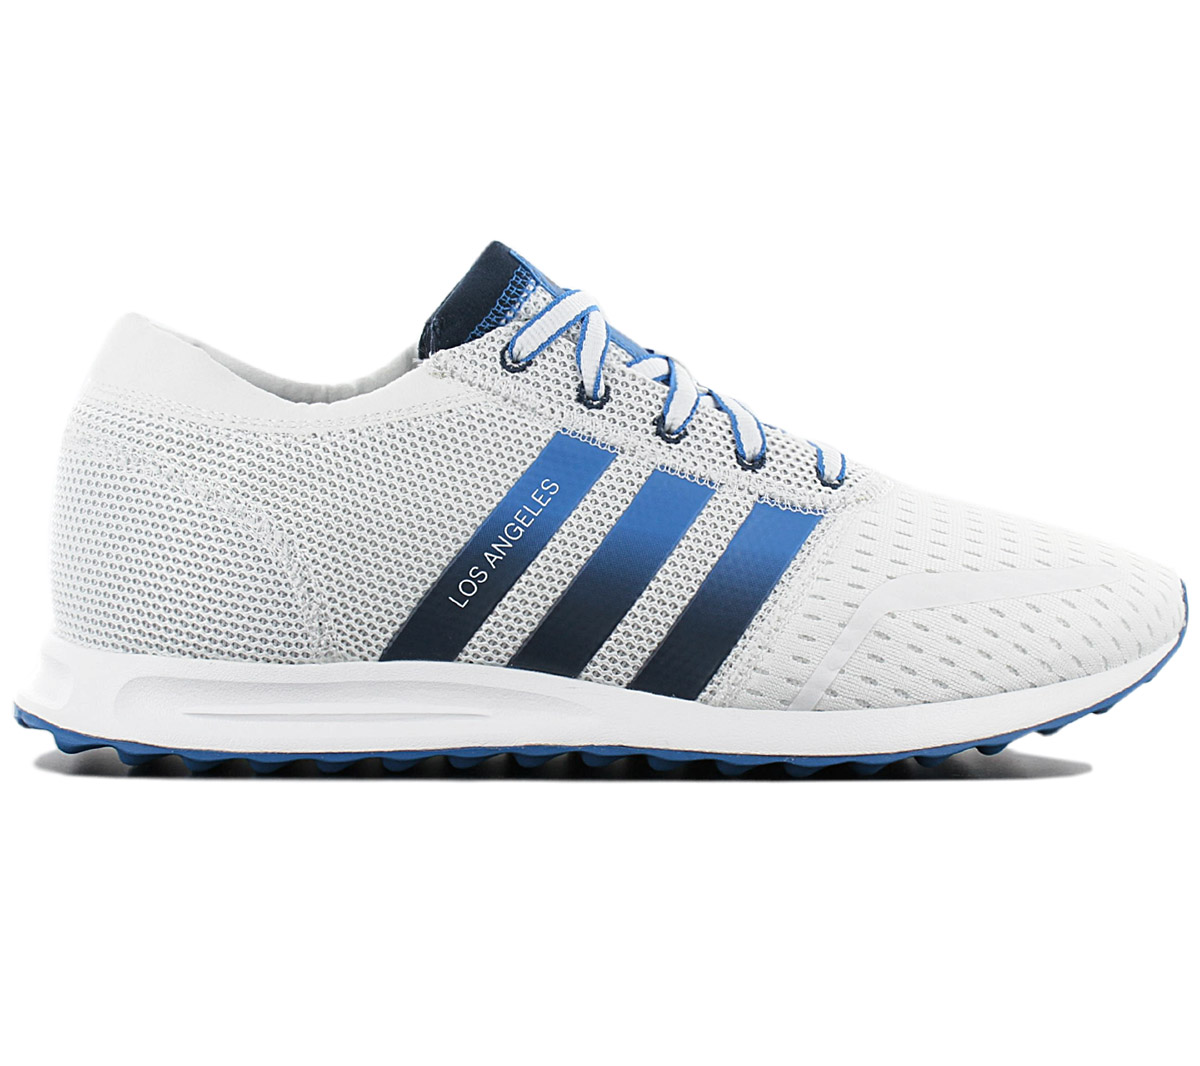 Details about Adidas Originals Los Angeles Men's Sneaker S79032 White Shoes Sneakers New